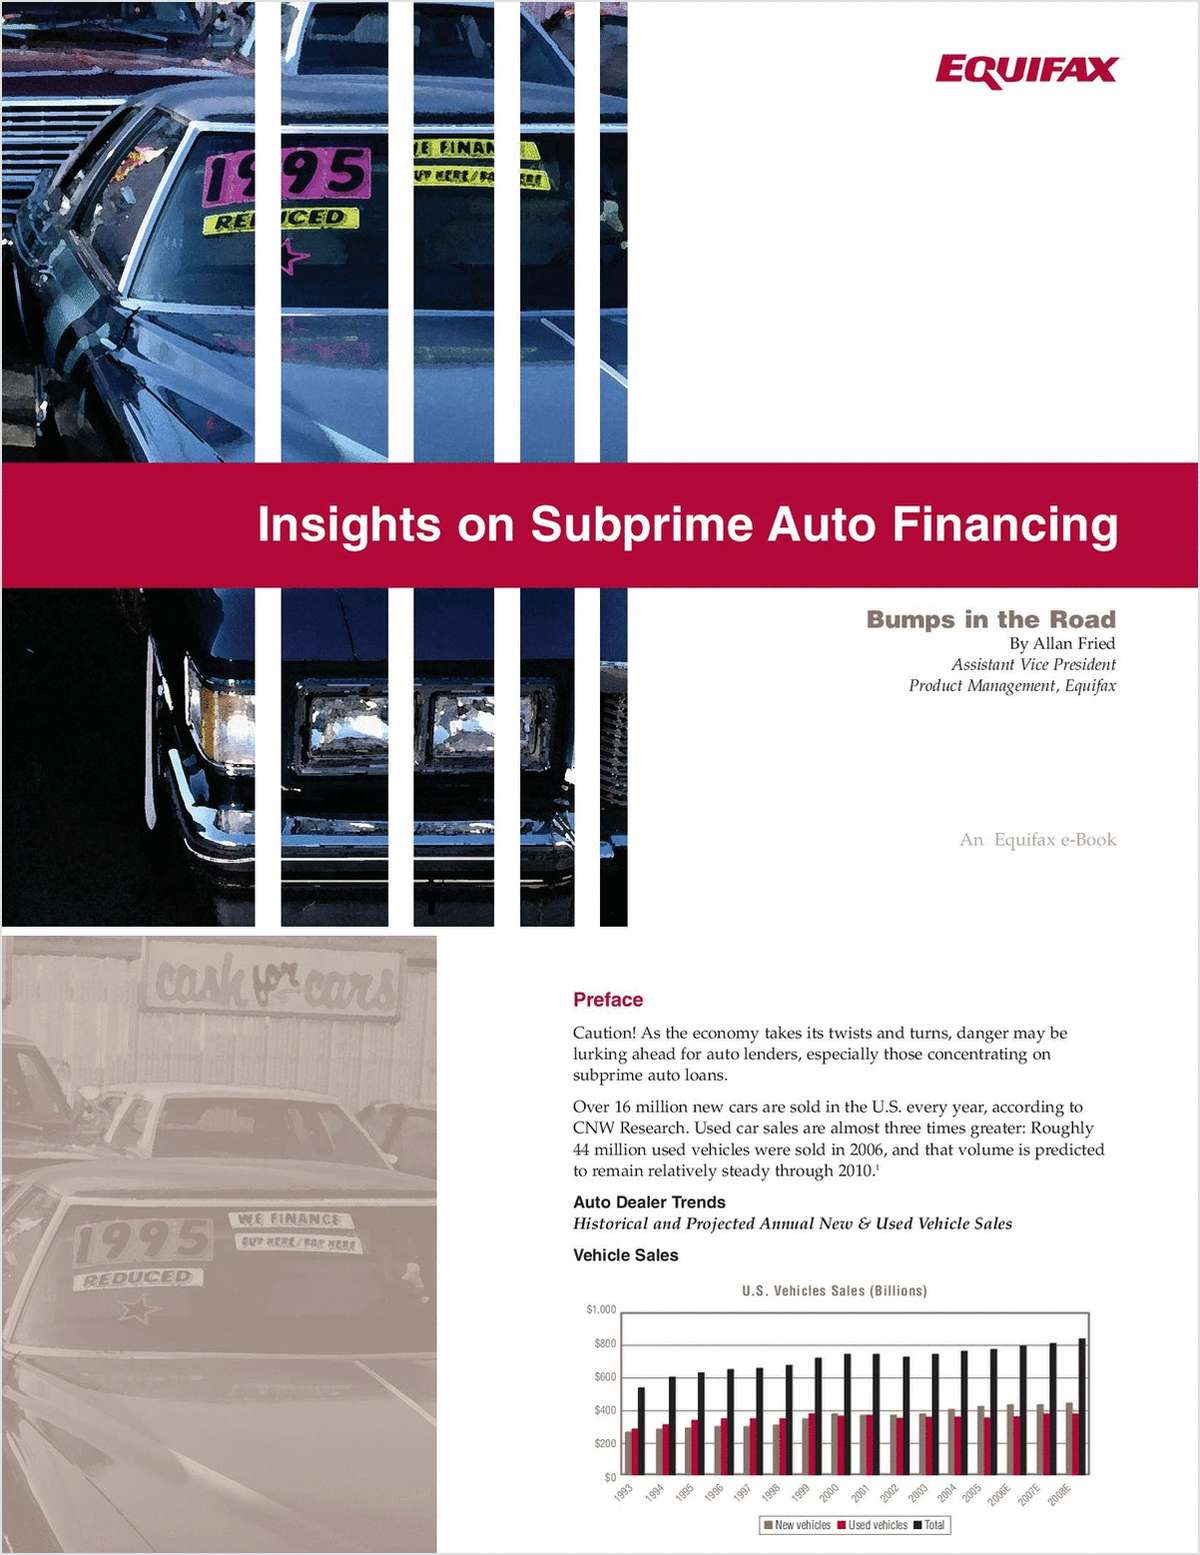 Insights on Subprime Auto Financing